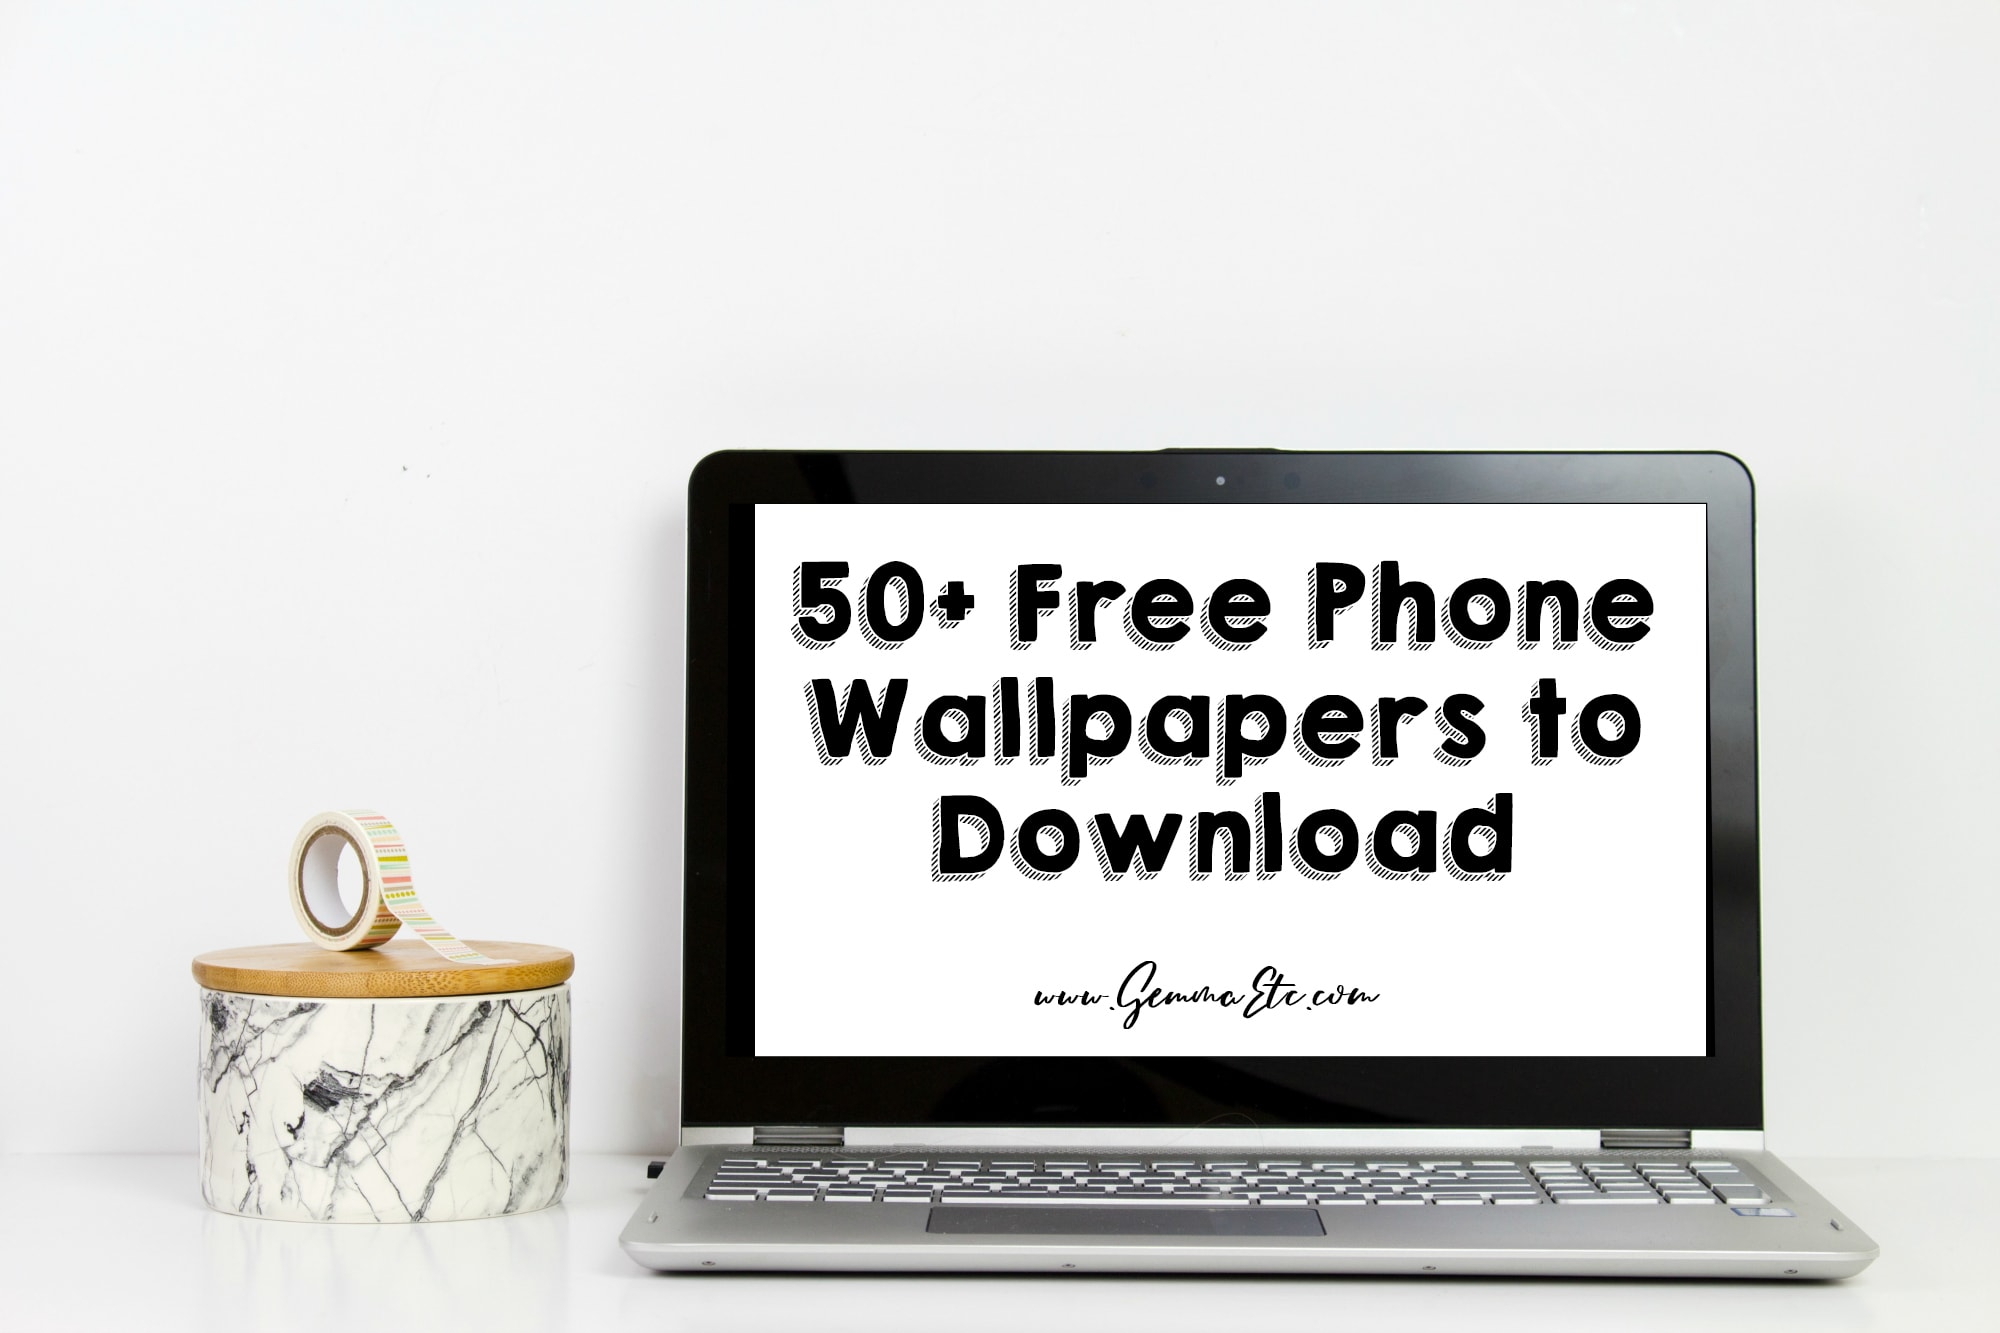 Free Phone Wallpapers and Backgrounds #2 Over 50 FREE Phone Wallpapers to download